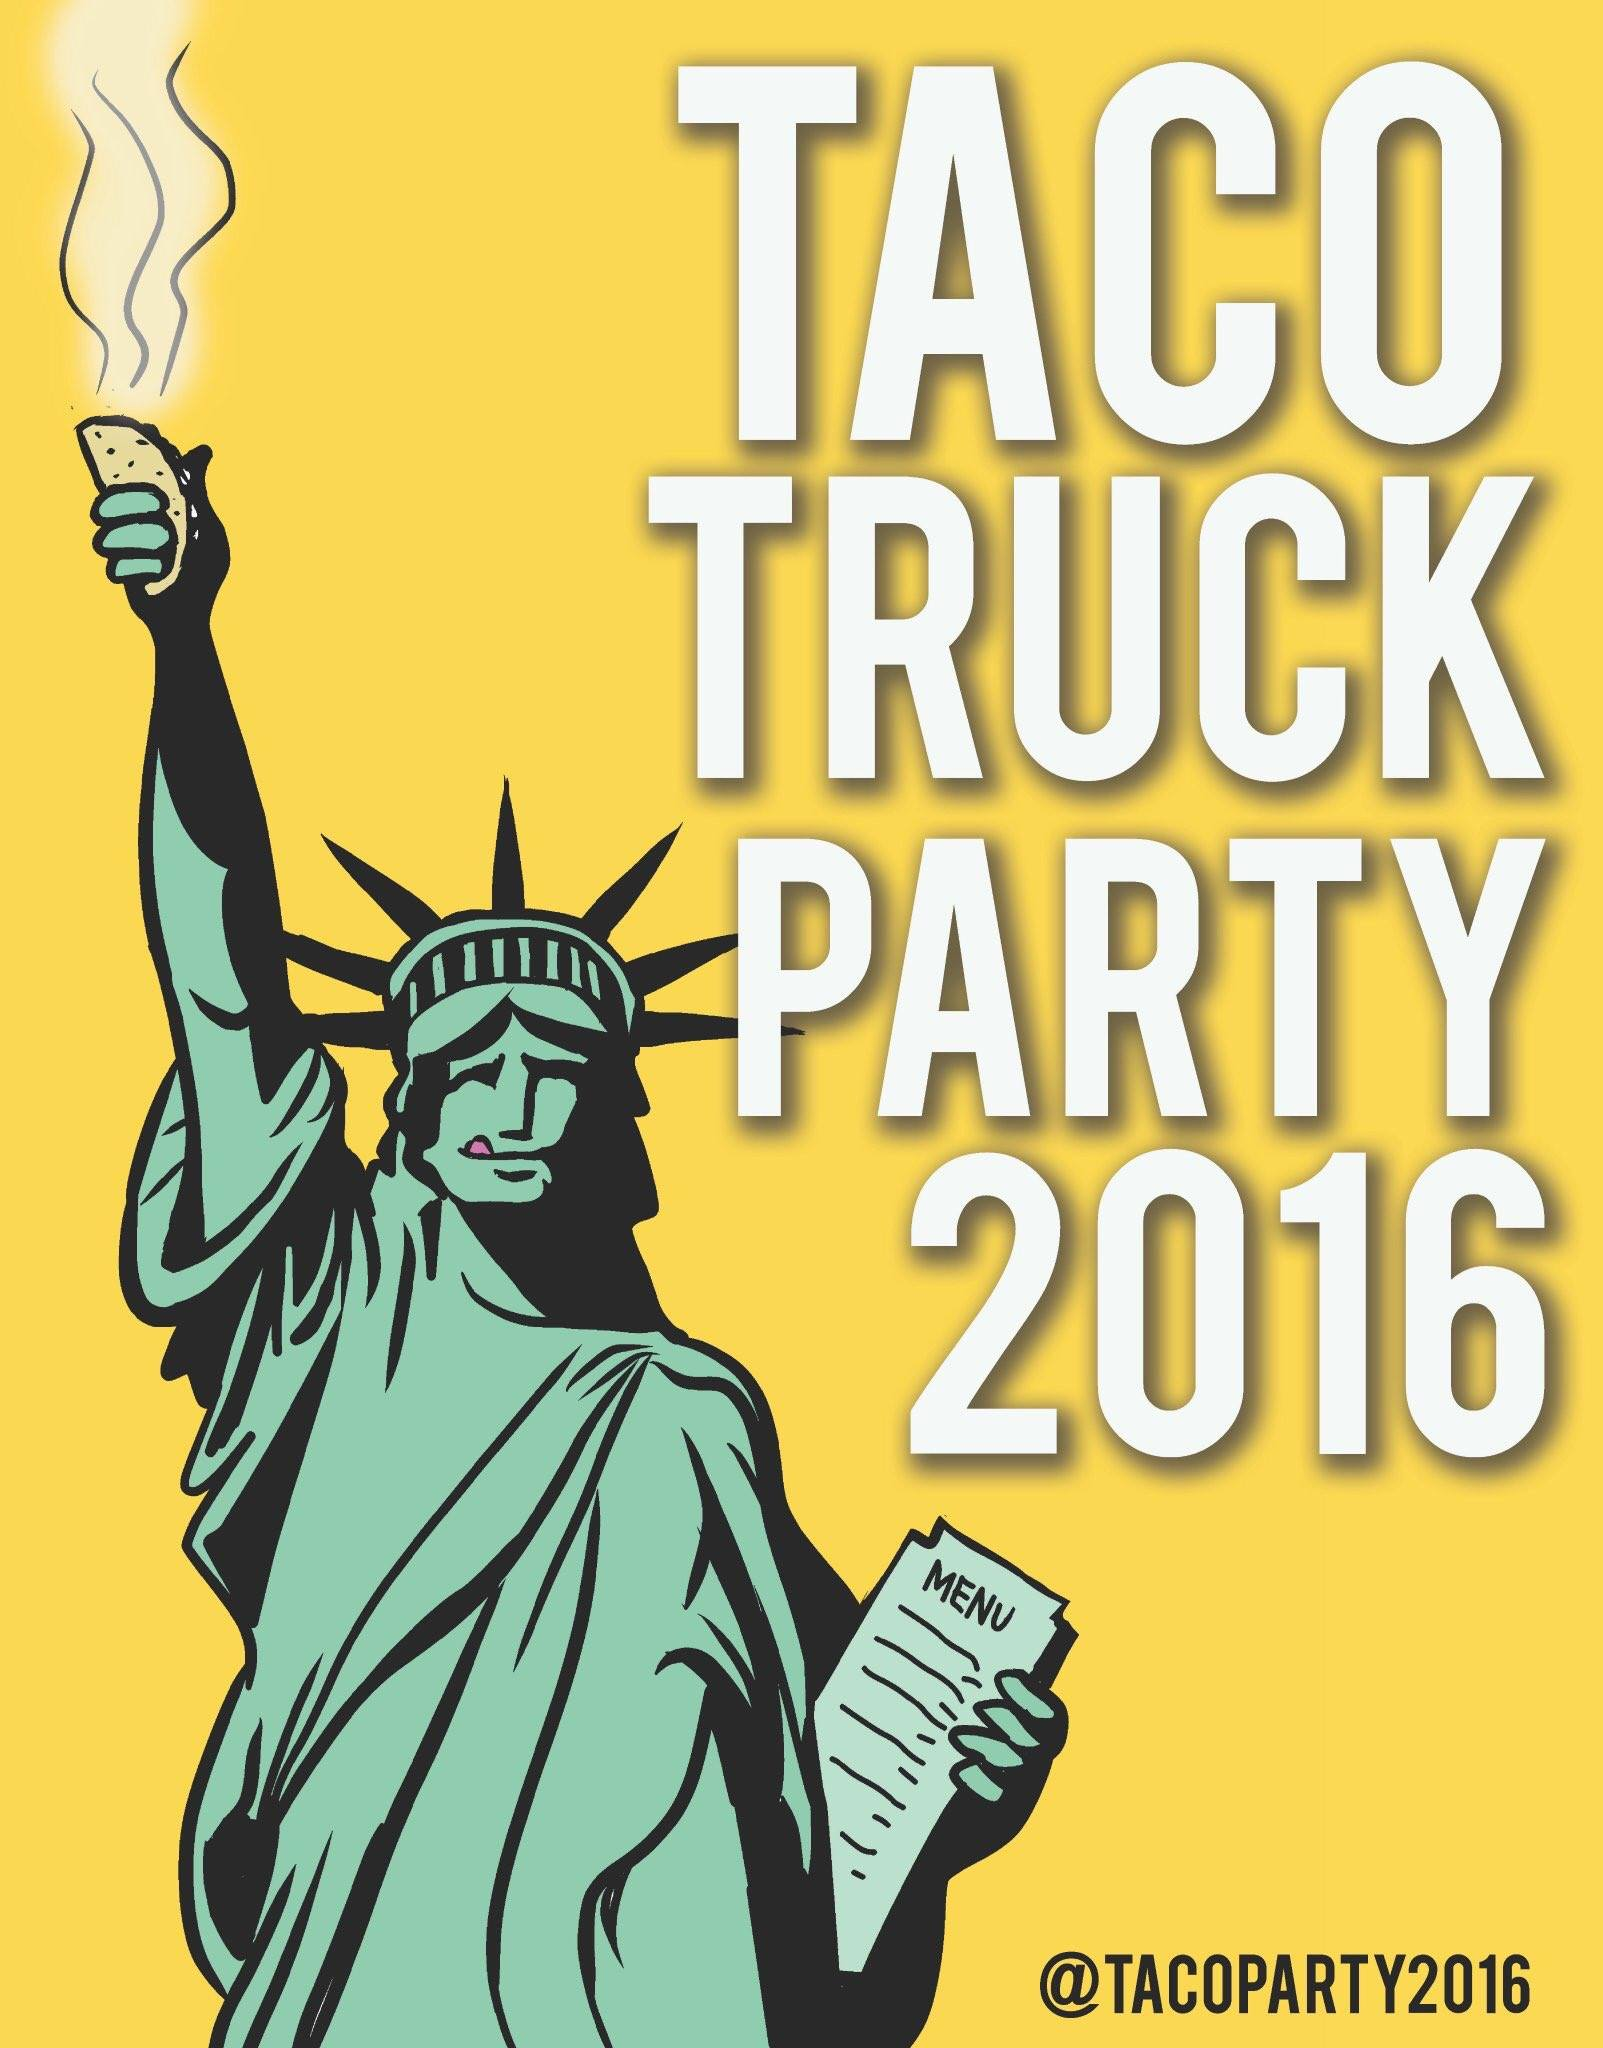 tacotruckpartylogo